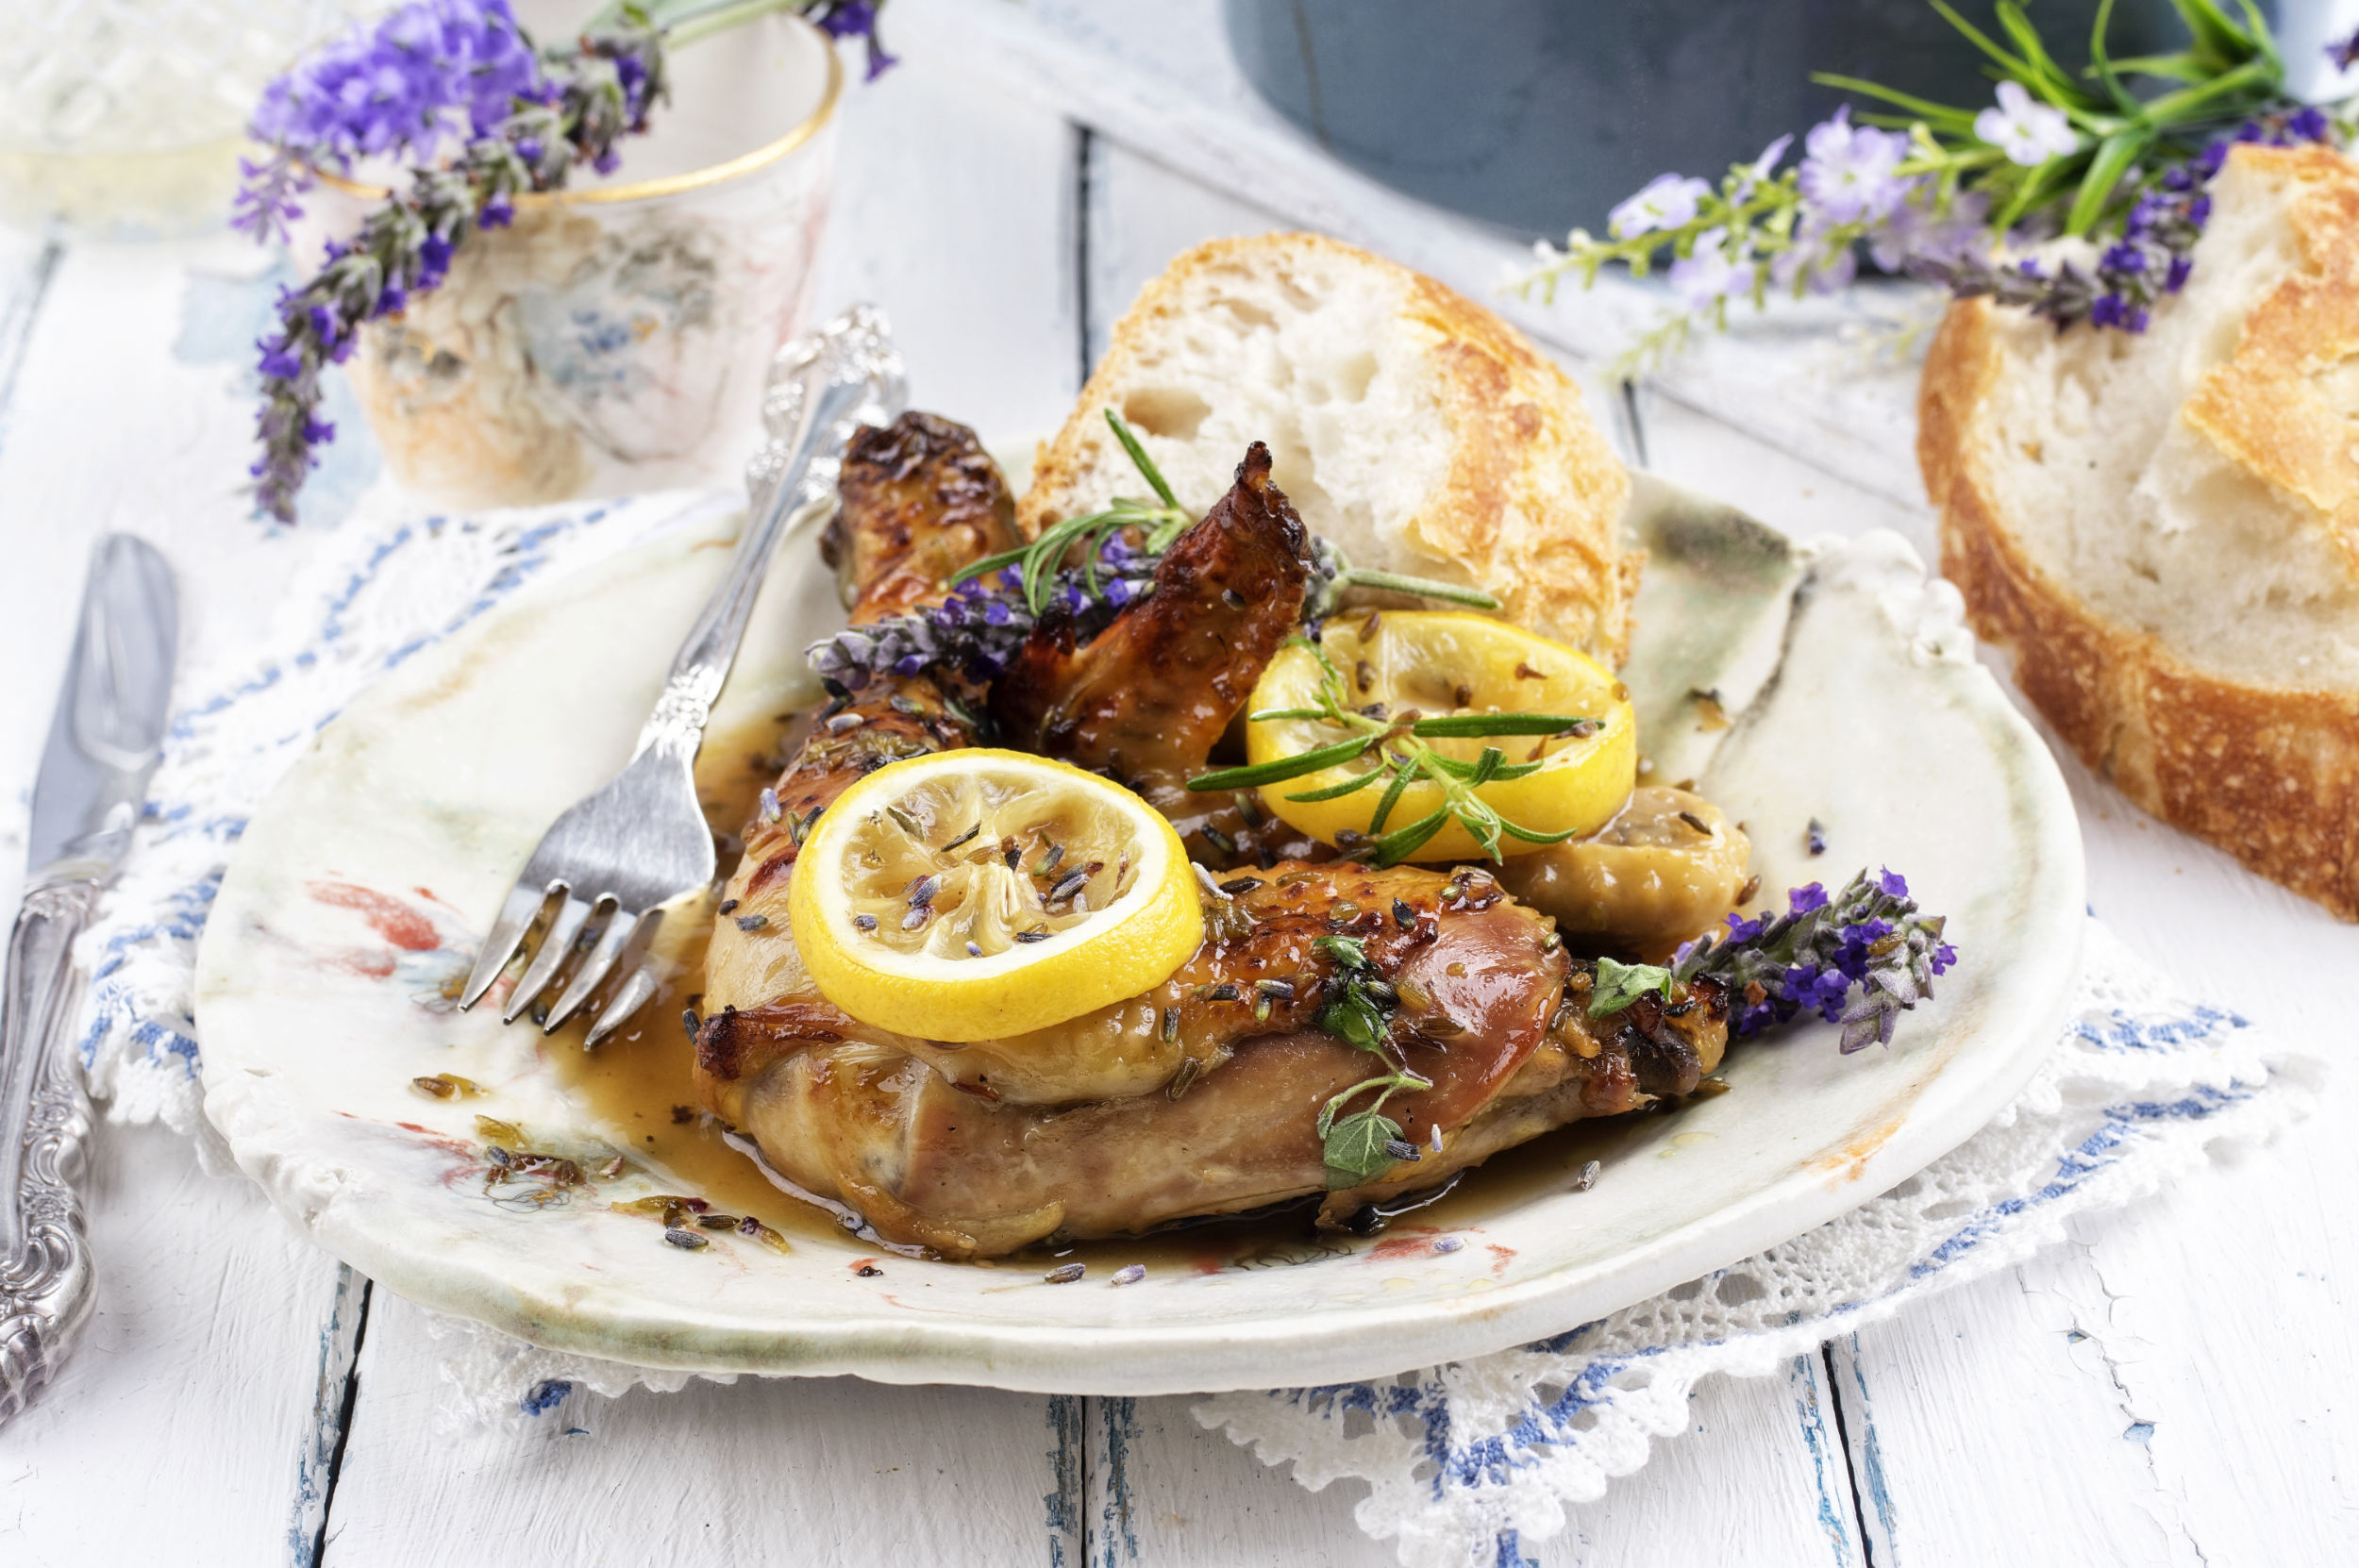 Lemon & Lavender Chicken